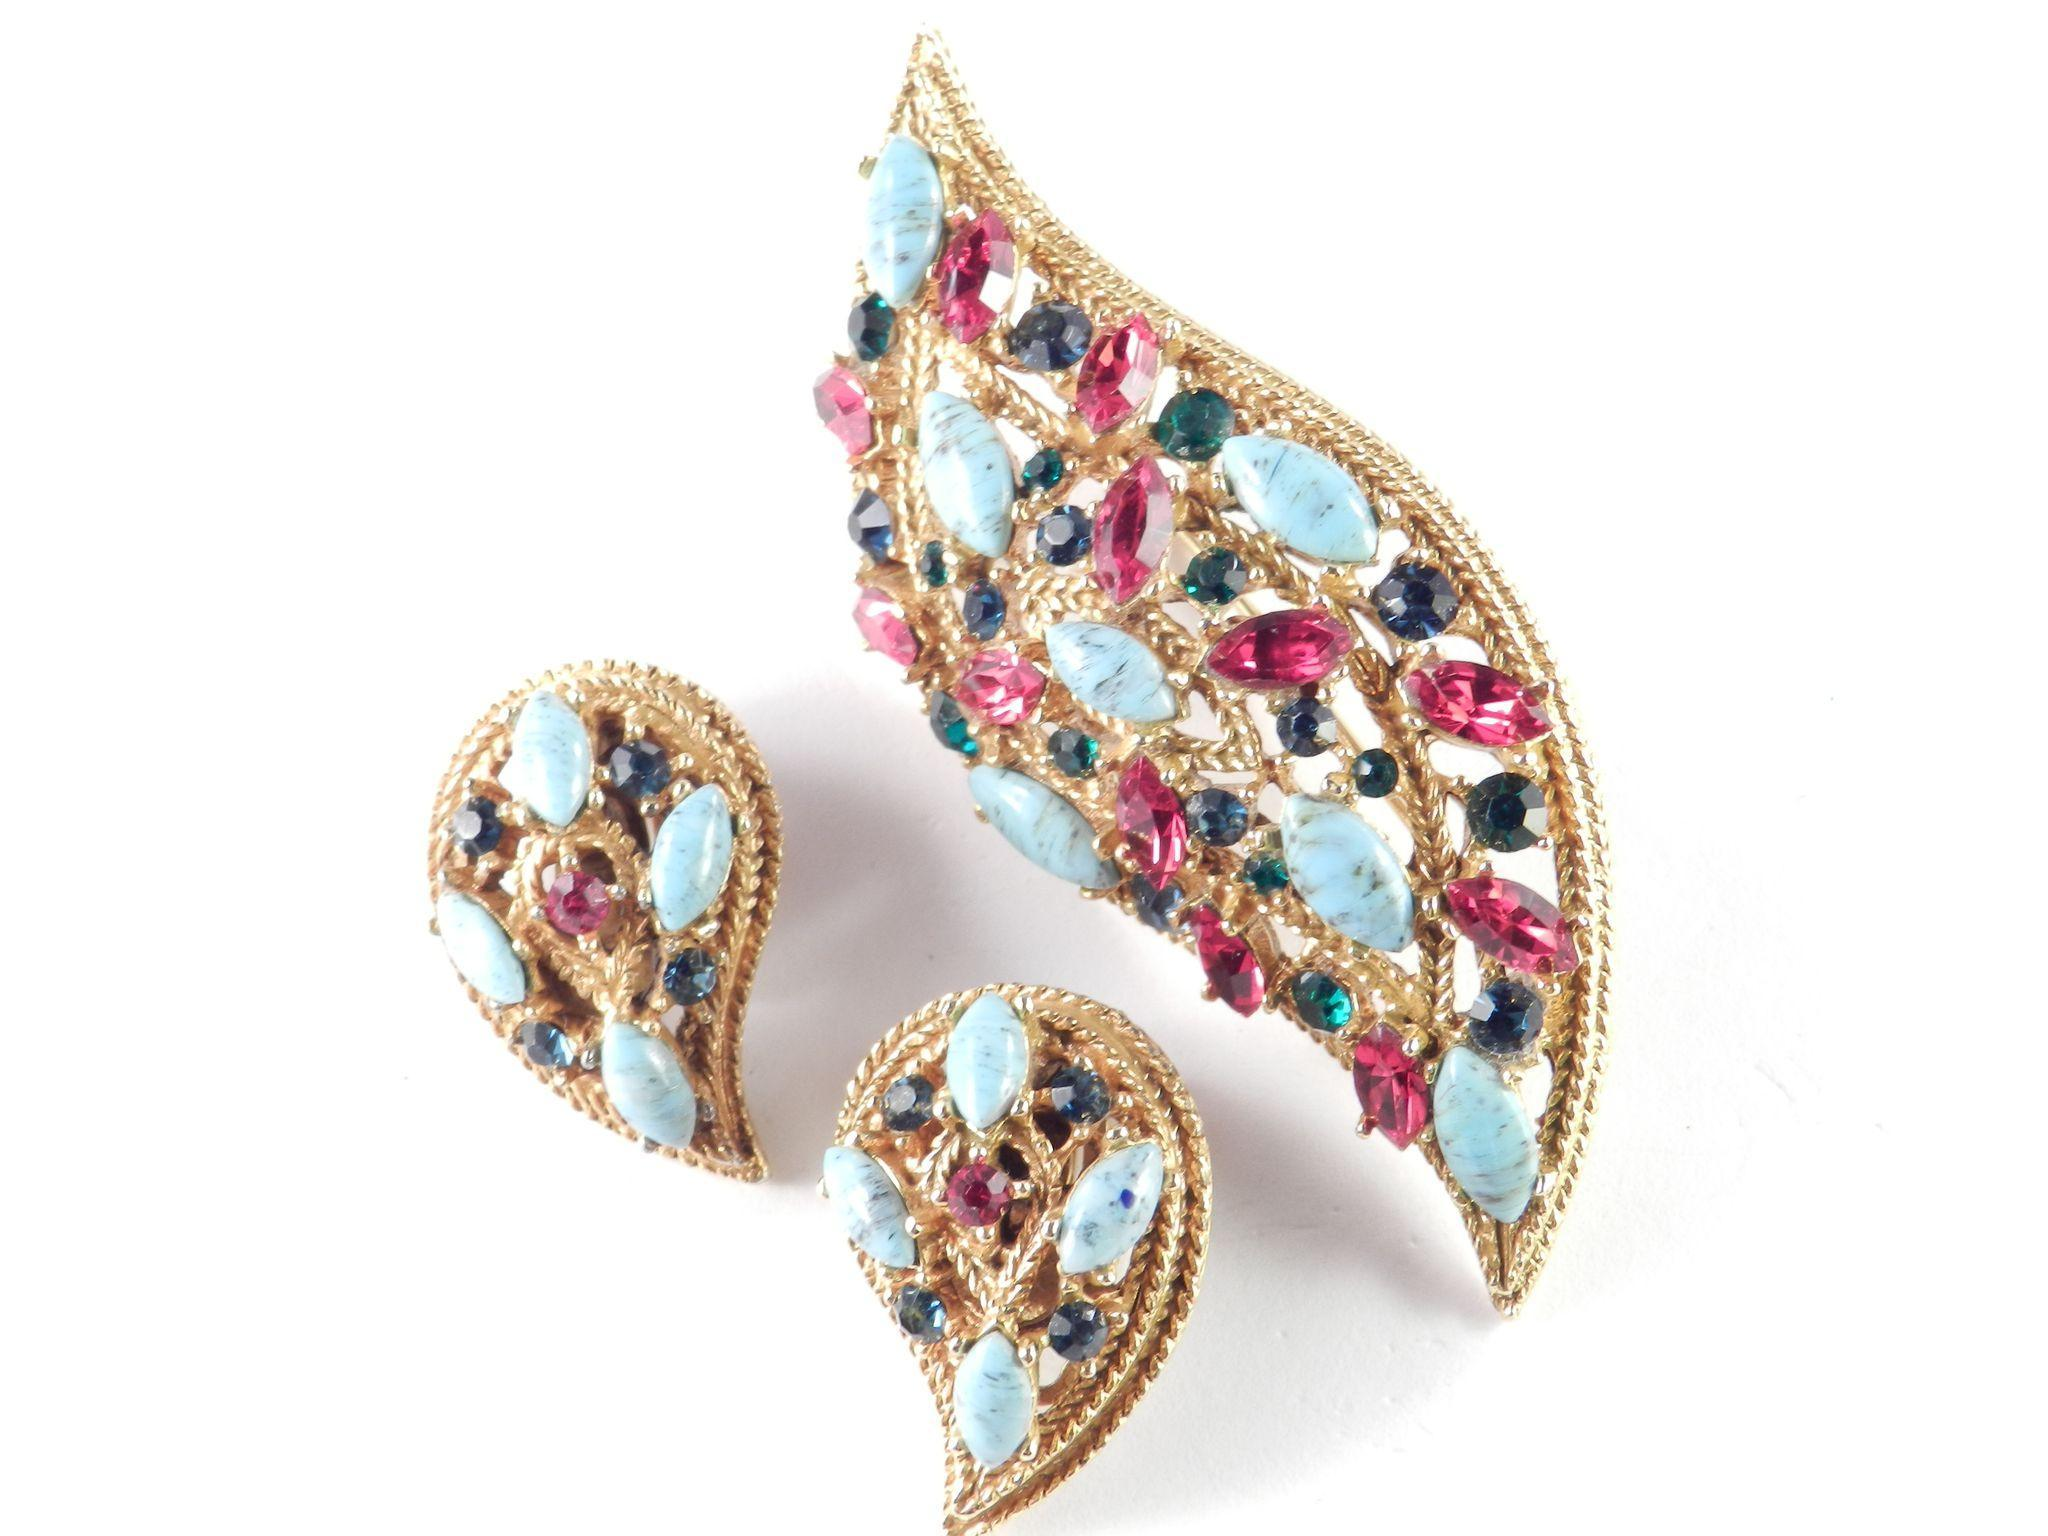 Capri Rhinestone Faux Turquoise Brooch Pin Earrings Set Demi Parure